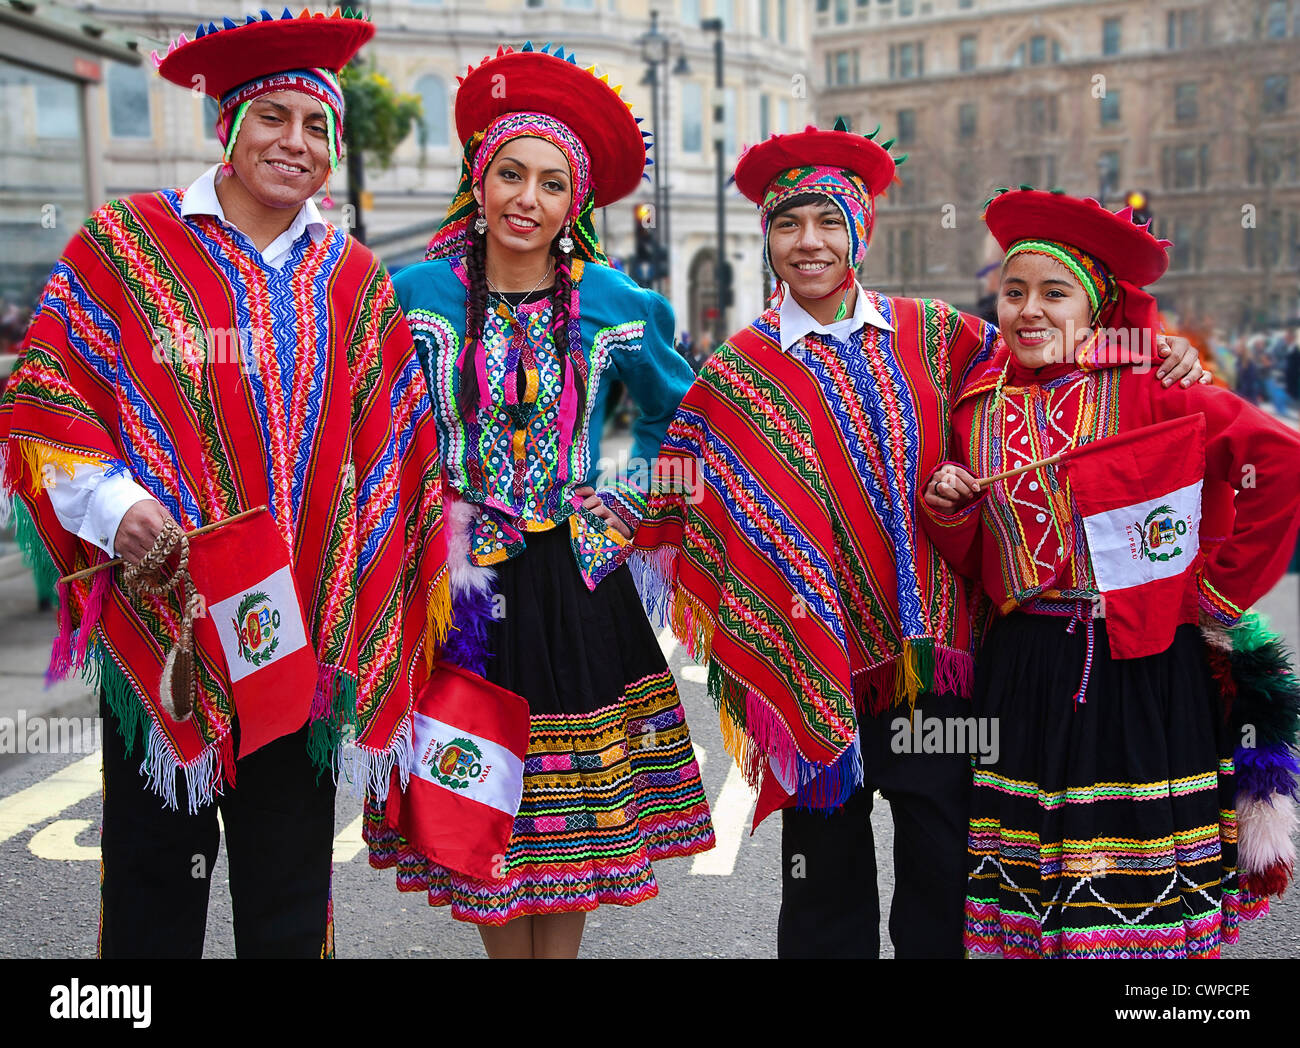 UK. L'Angleterre. Londres. Quatre personnes en costume traditionnel pendant les célébrations du Nouvel Photo Stock